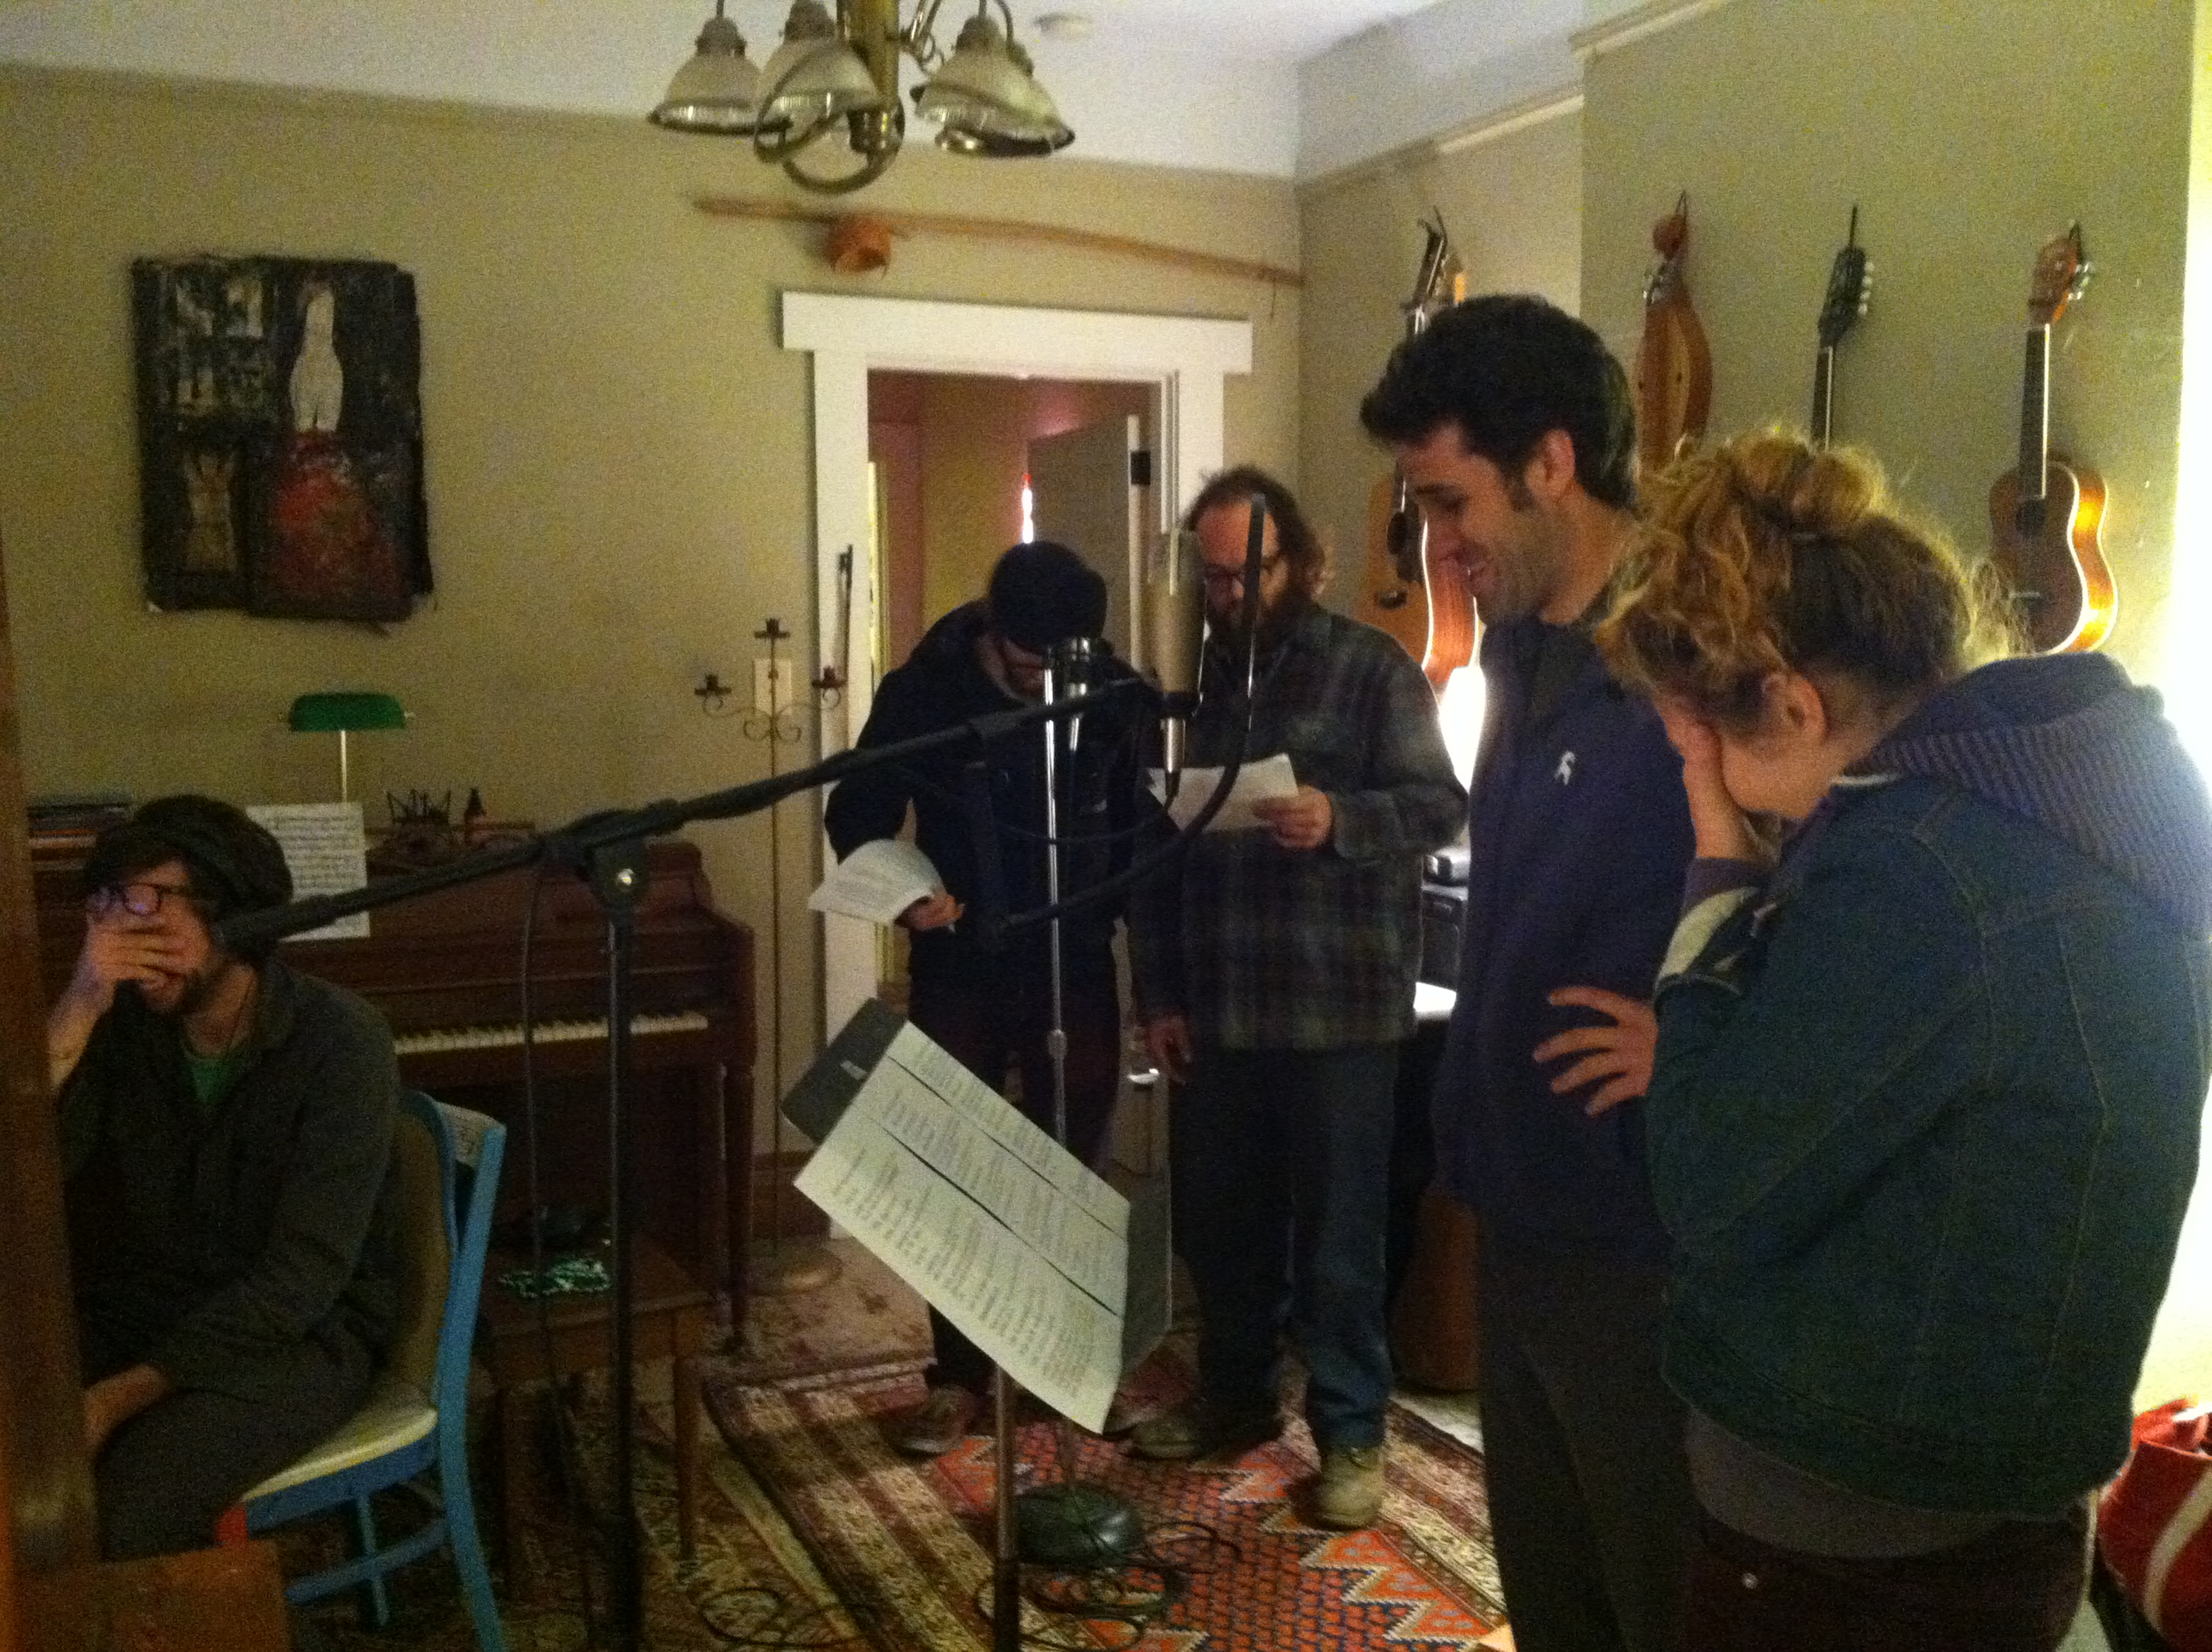 Behind the scenes, recording episode two: (from left): Kyle Sheehan, Dylan Hunter, Andy Vaught, Chris Kaminstein, Aurora Nealand.